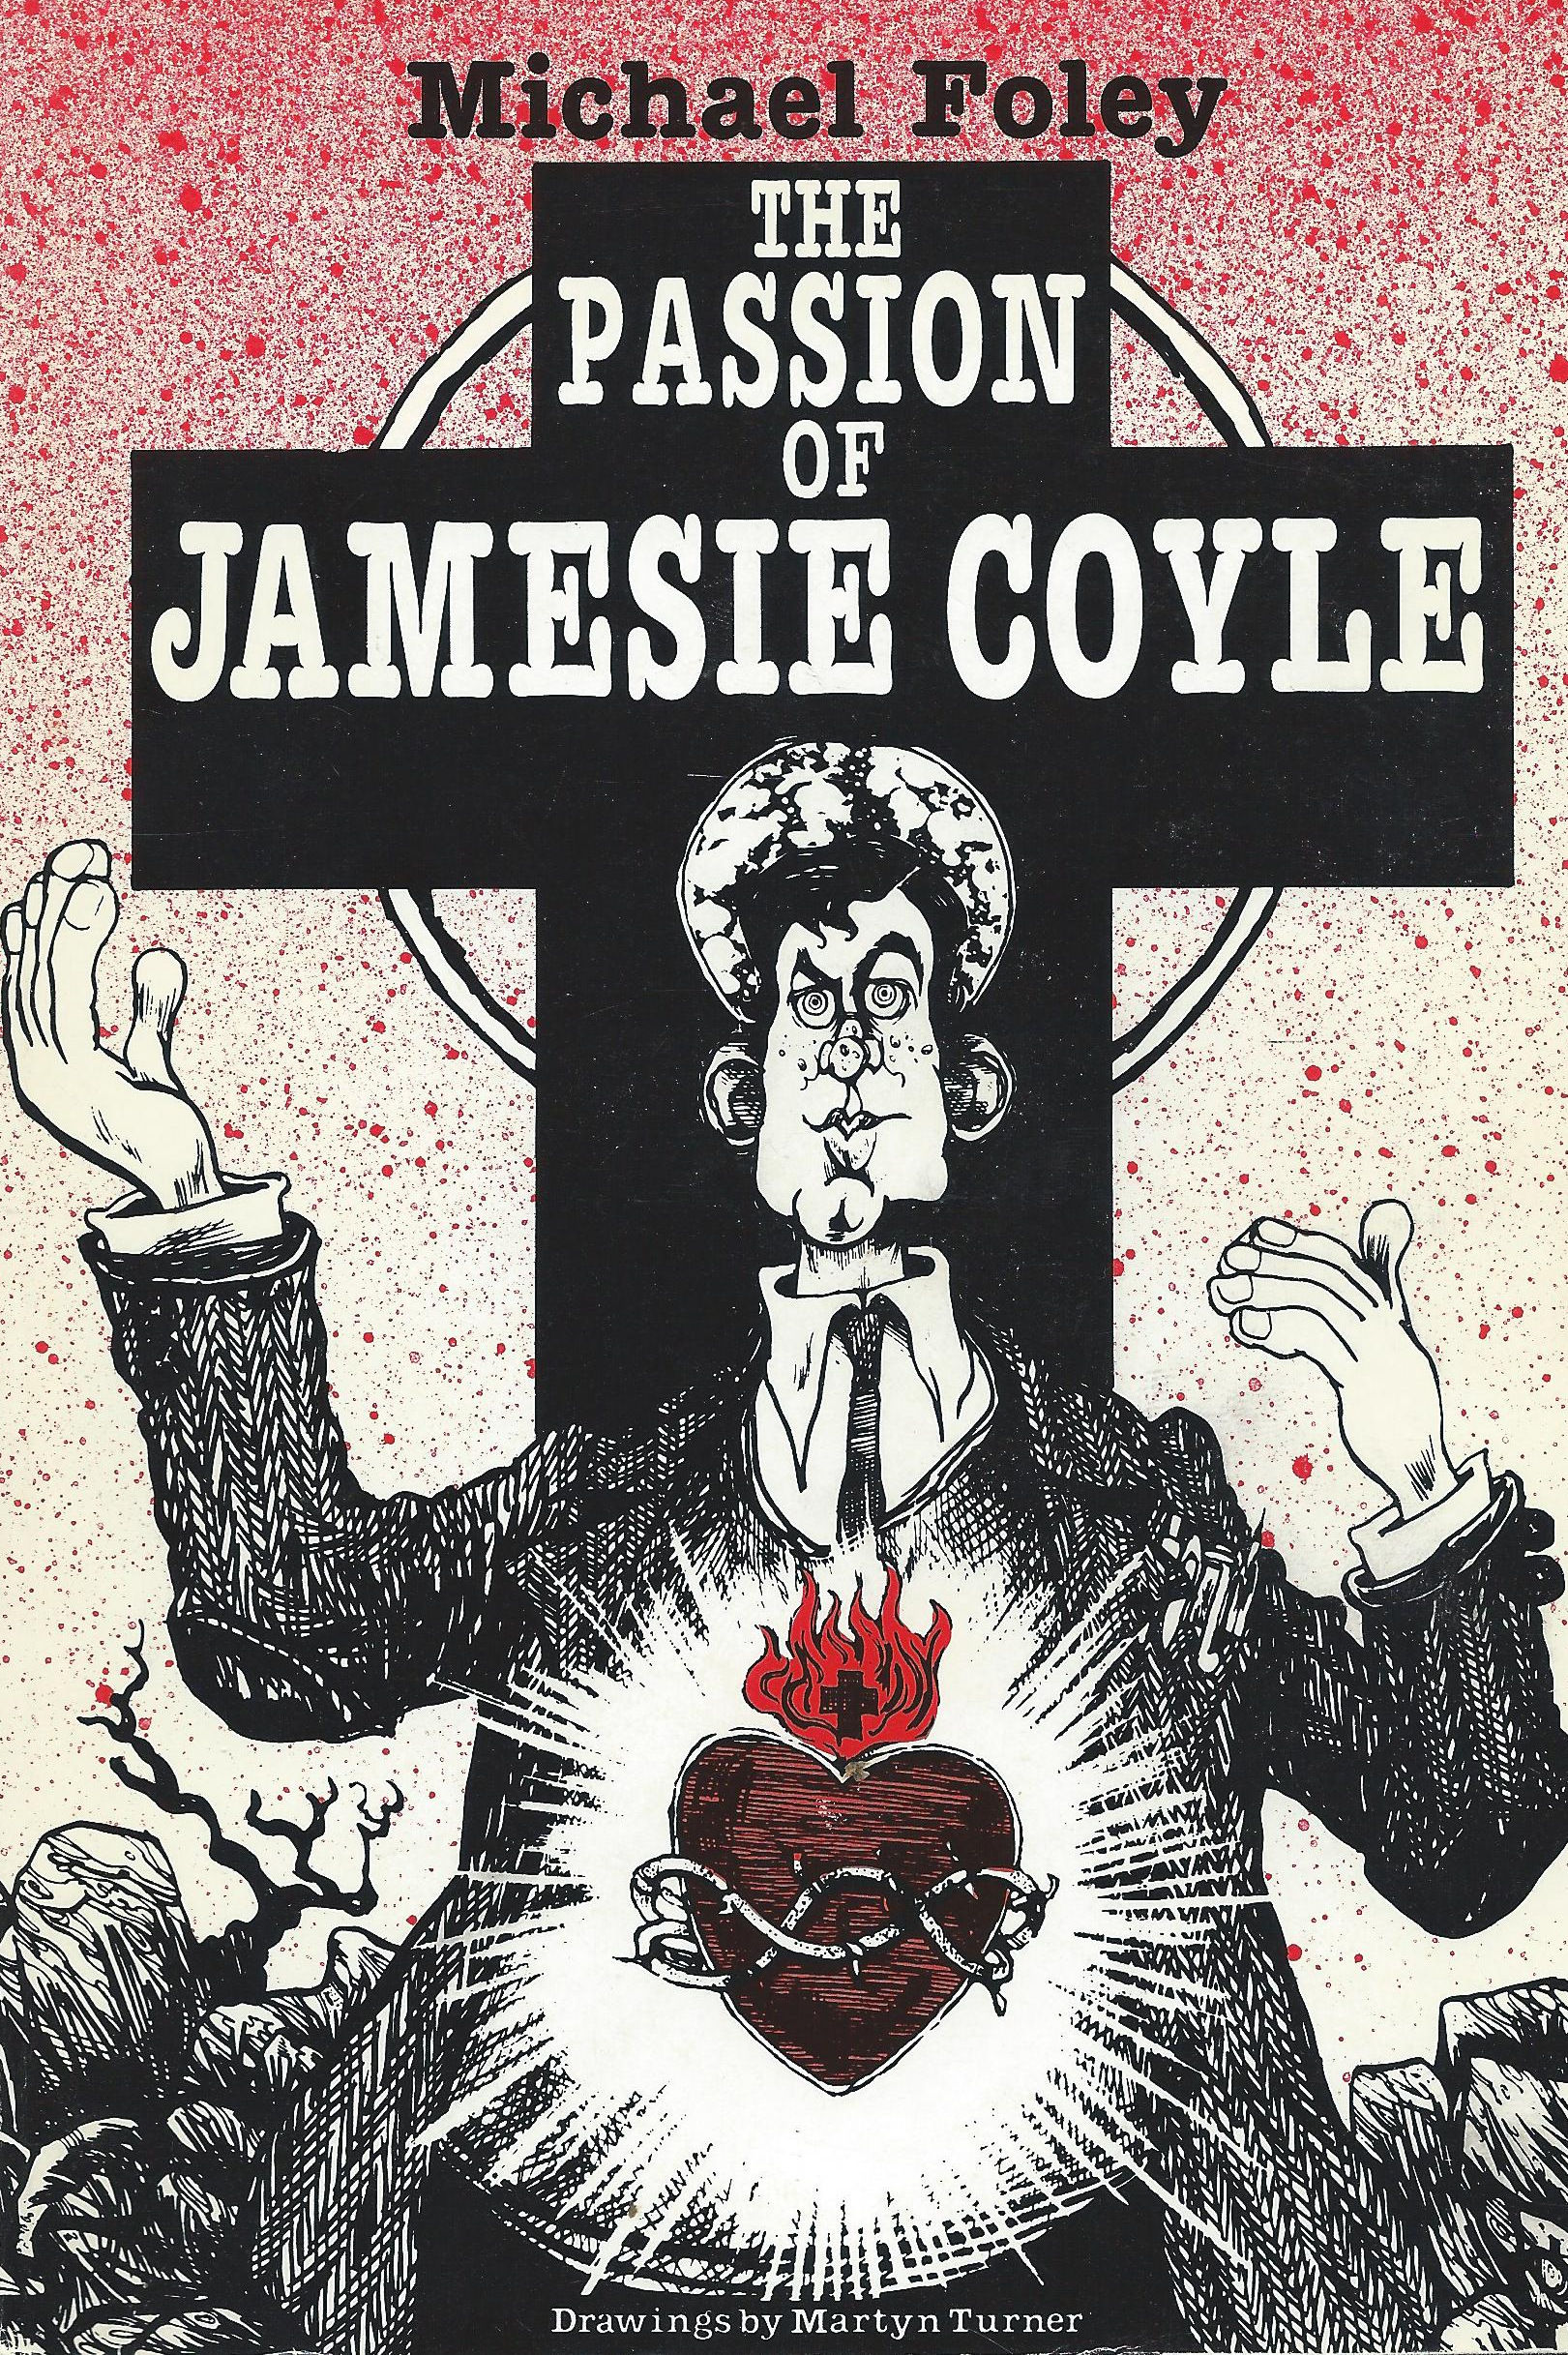 JAMESIE COYLE COVER 2.jpg